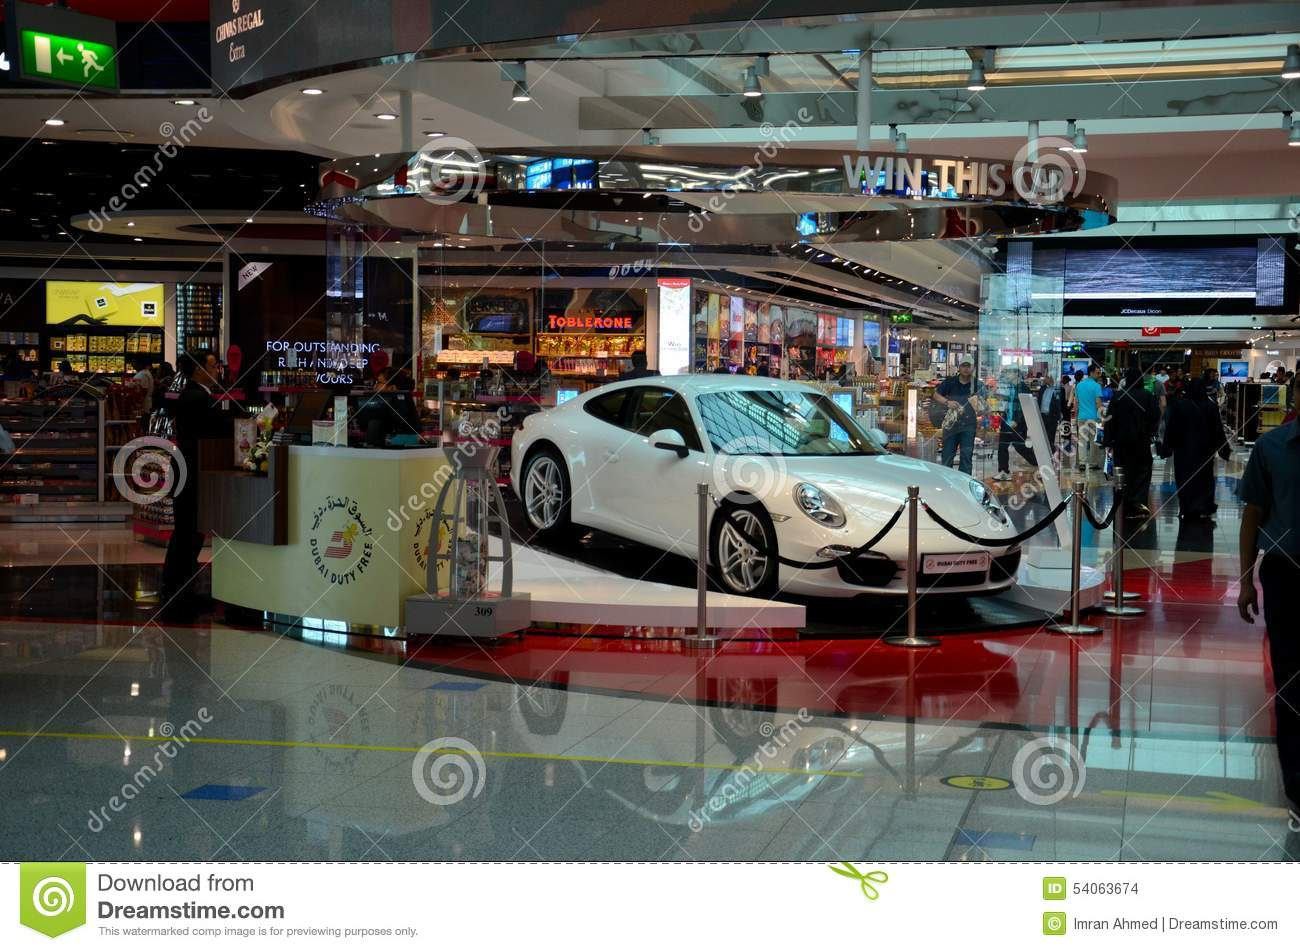 Lottery Porsche Displayed At Dubai Airport Duty Free Complex Uae